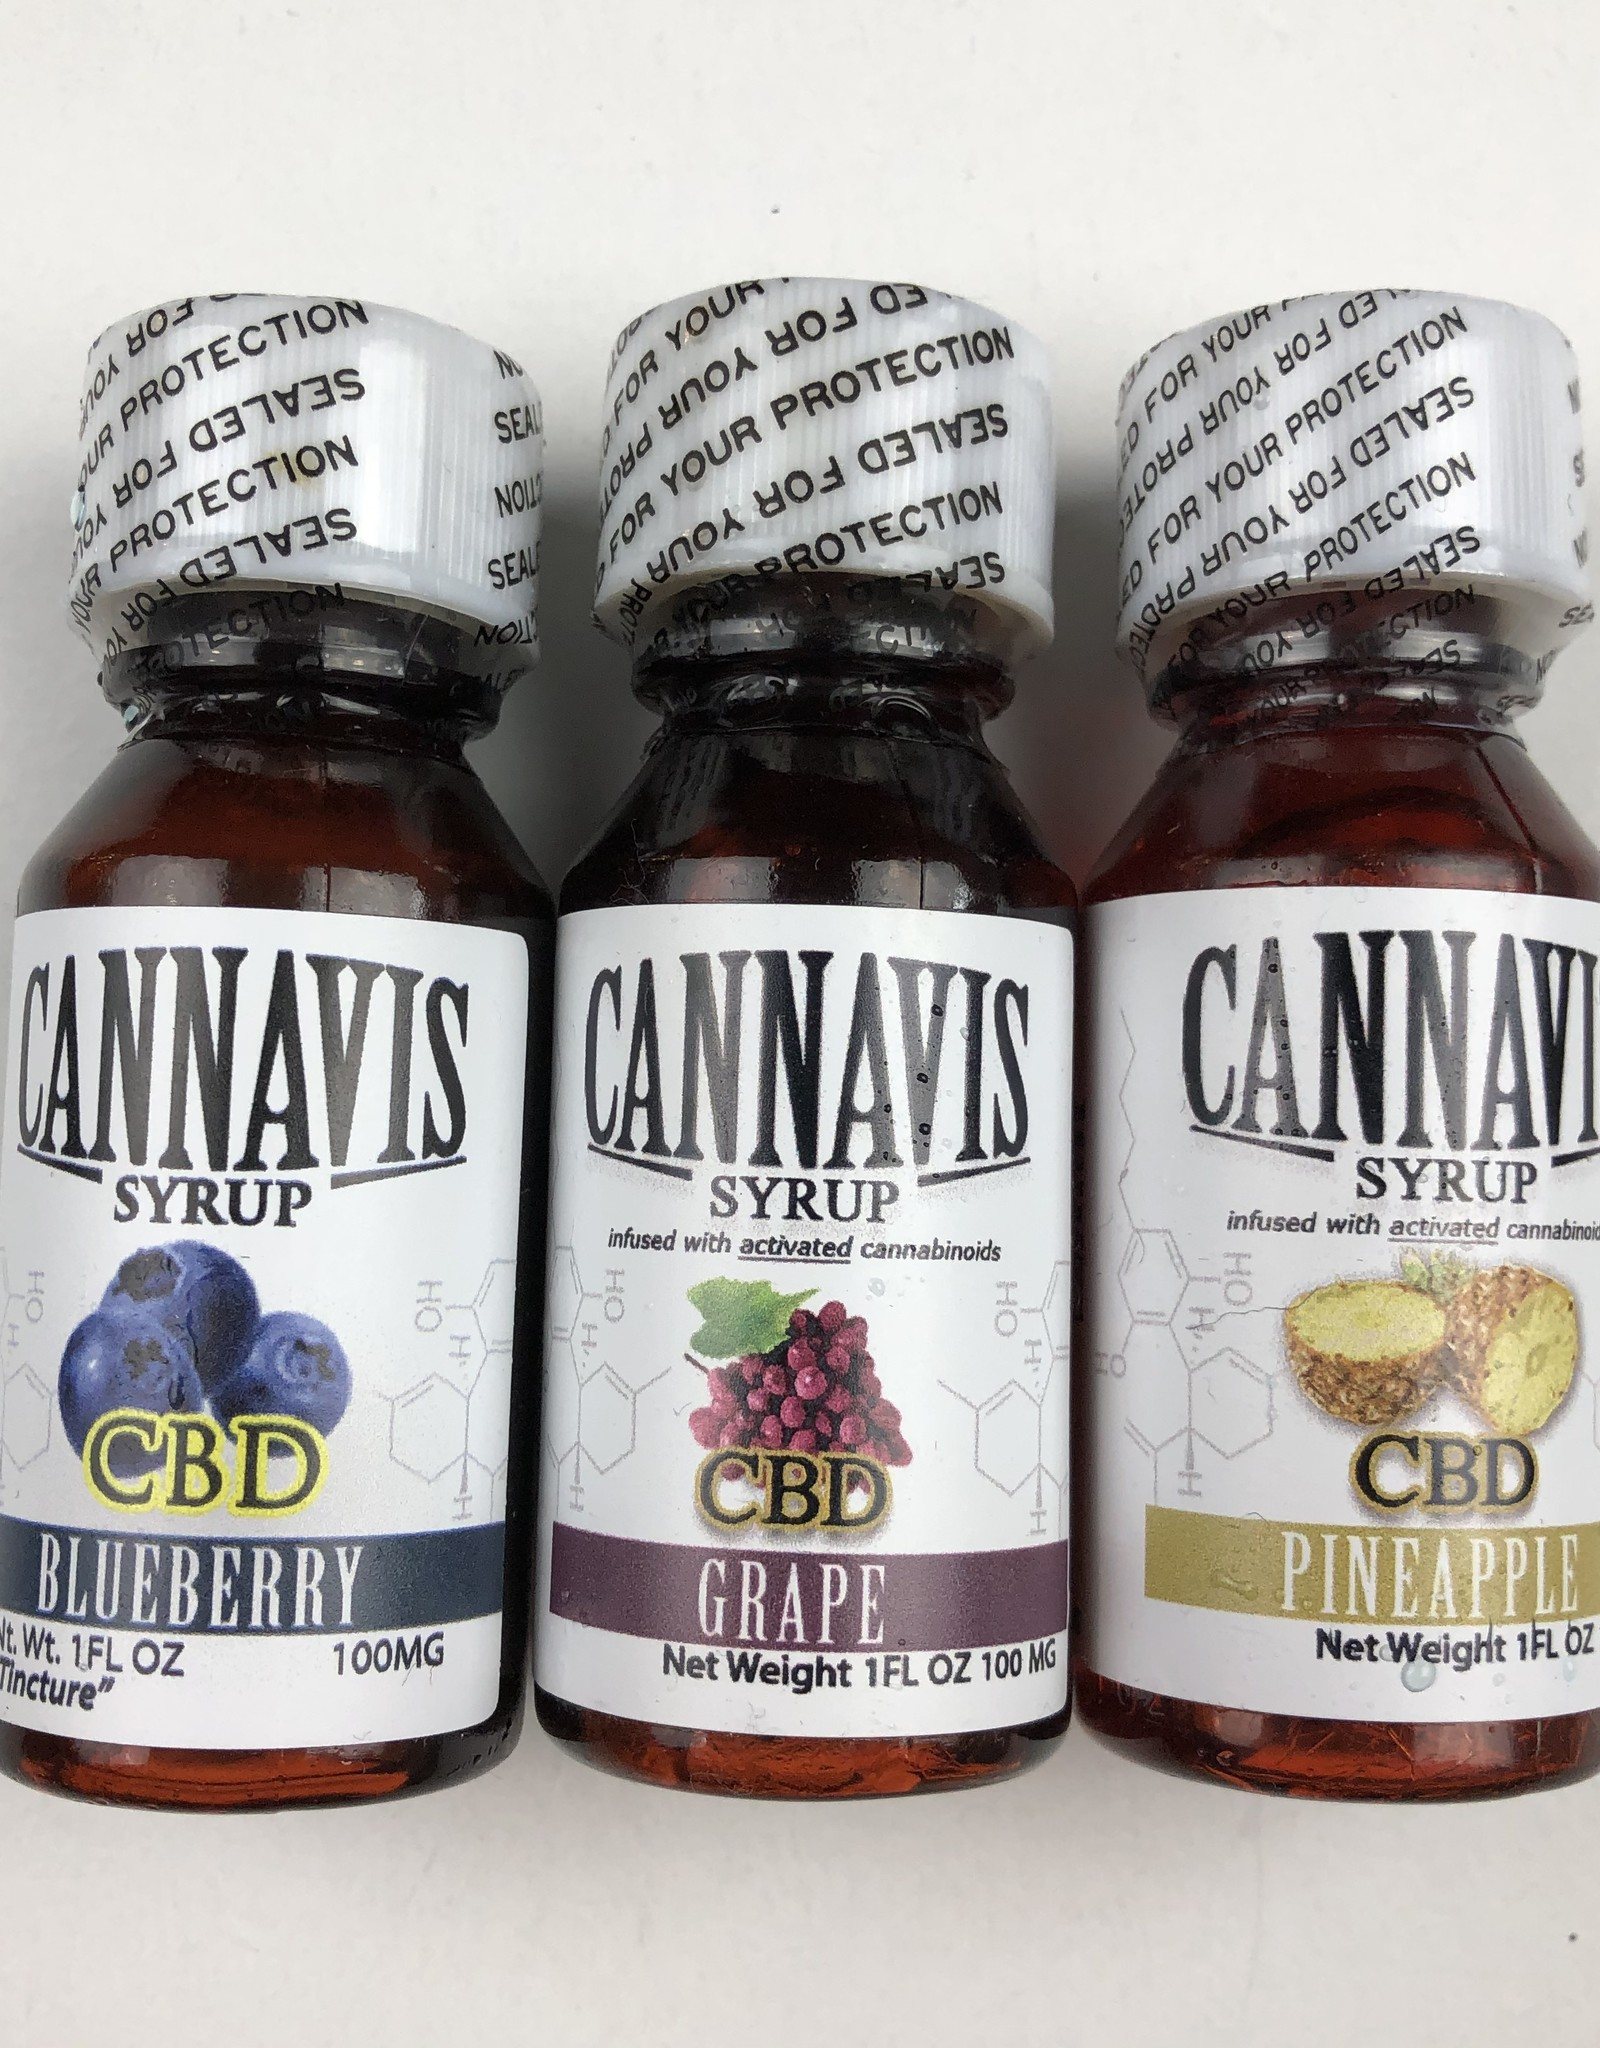 CANNAVIS CANNAVIS CBD 1 OUNCE SYRUP - (ALL FLAVORS)